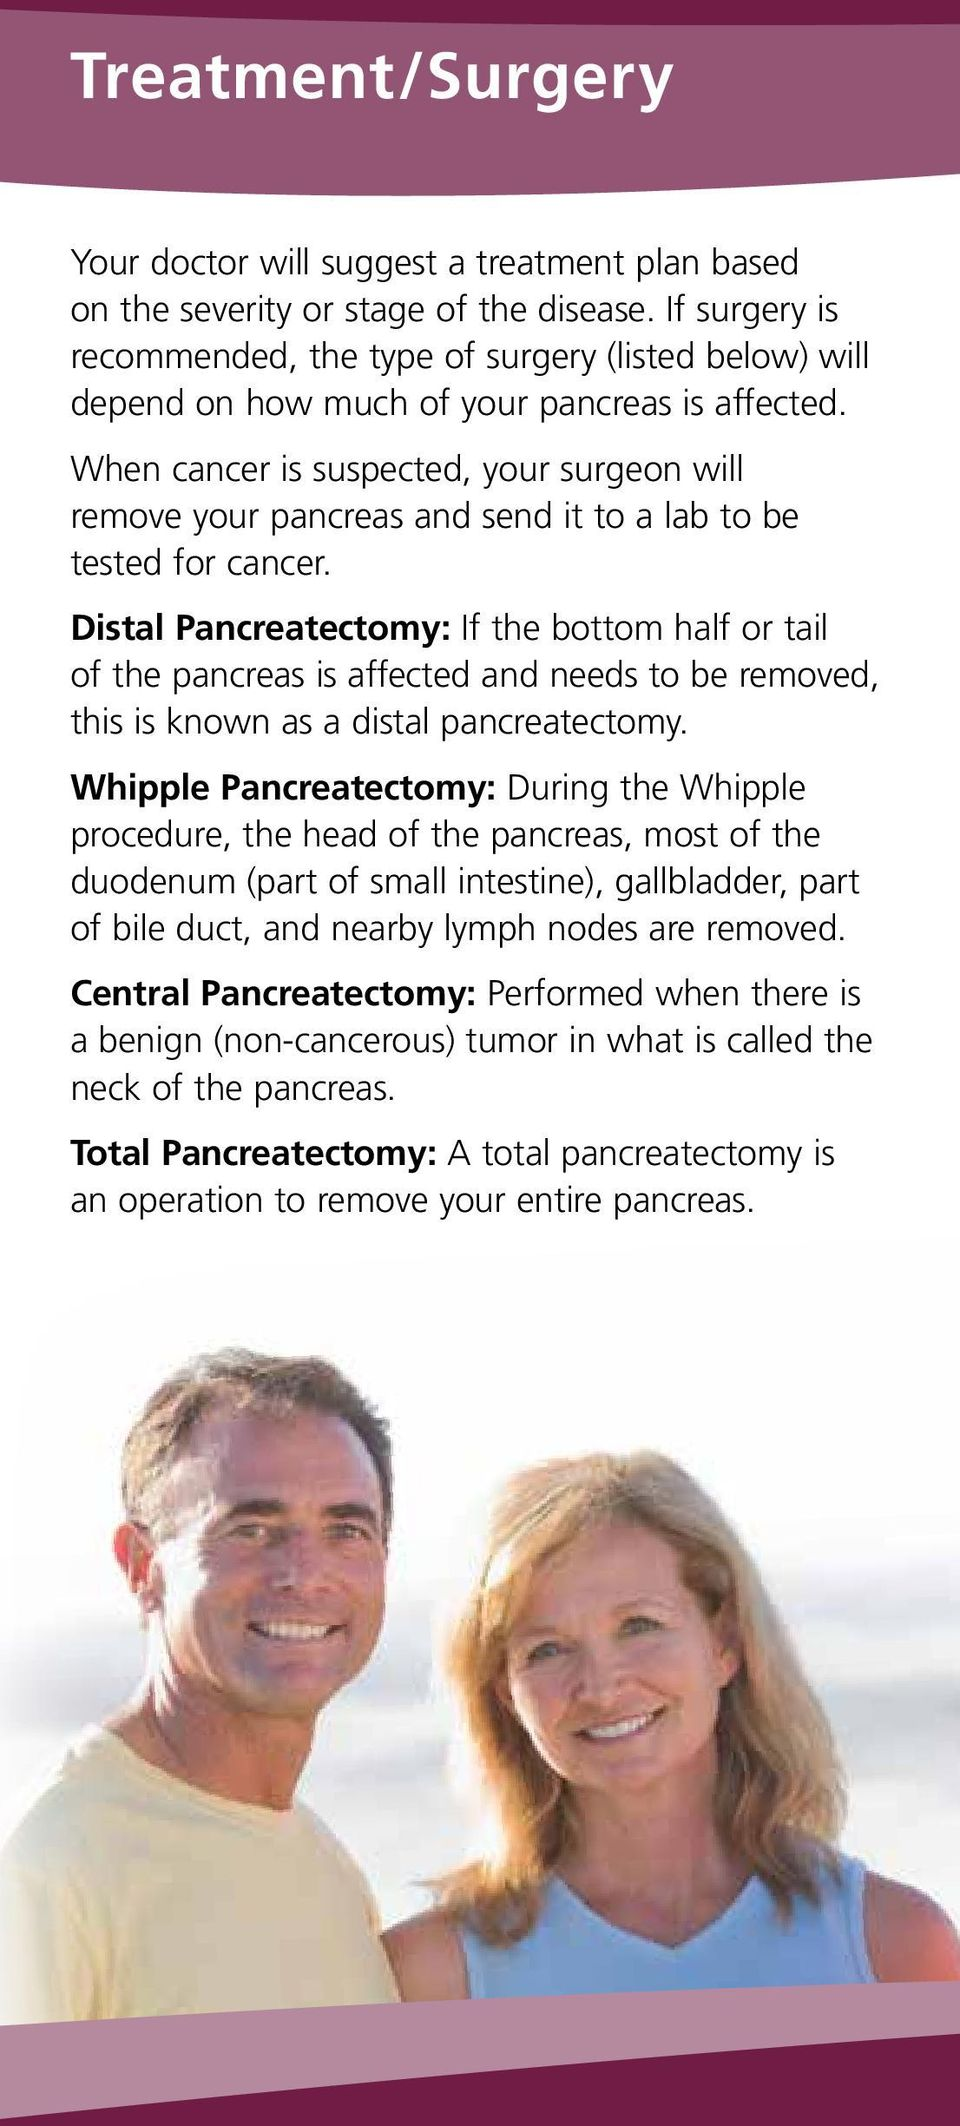 When cancer is suspected, your surgeon will remove your pancreas and send it to a lab to be tested for cancer.